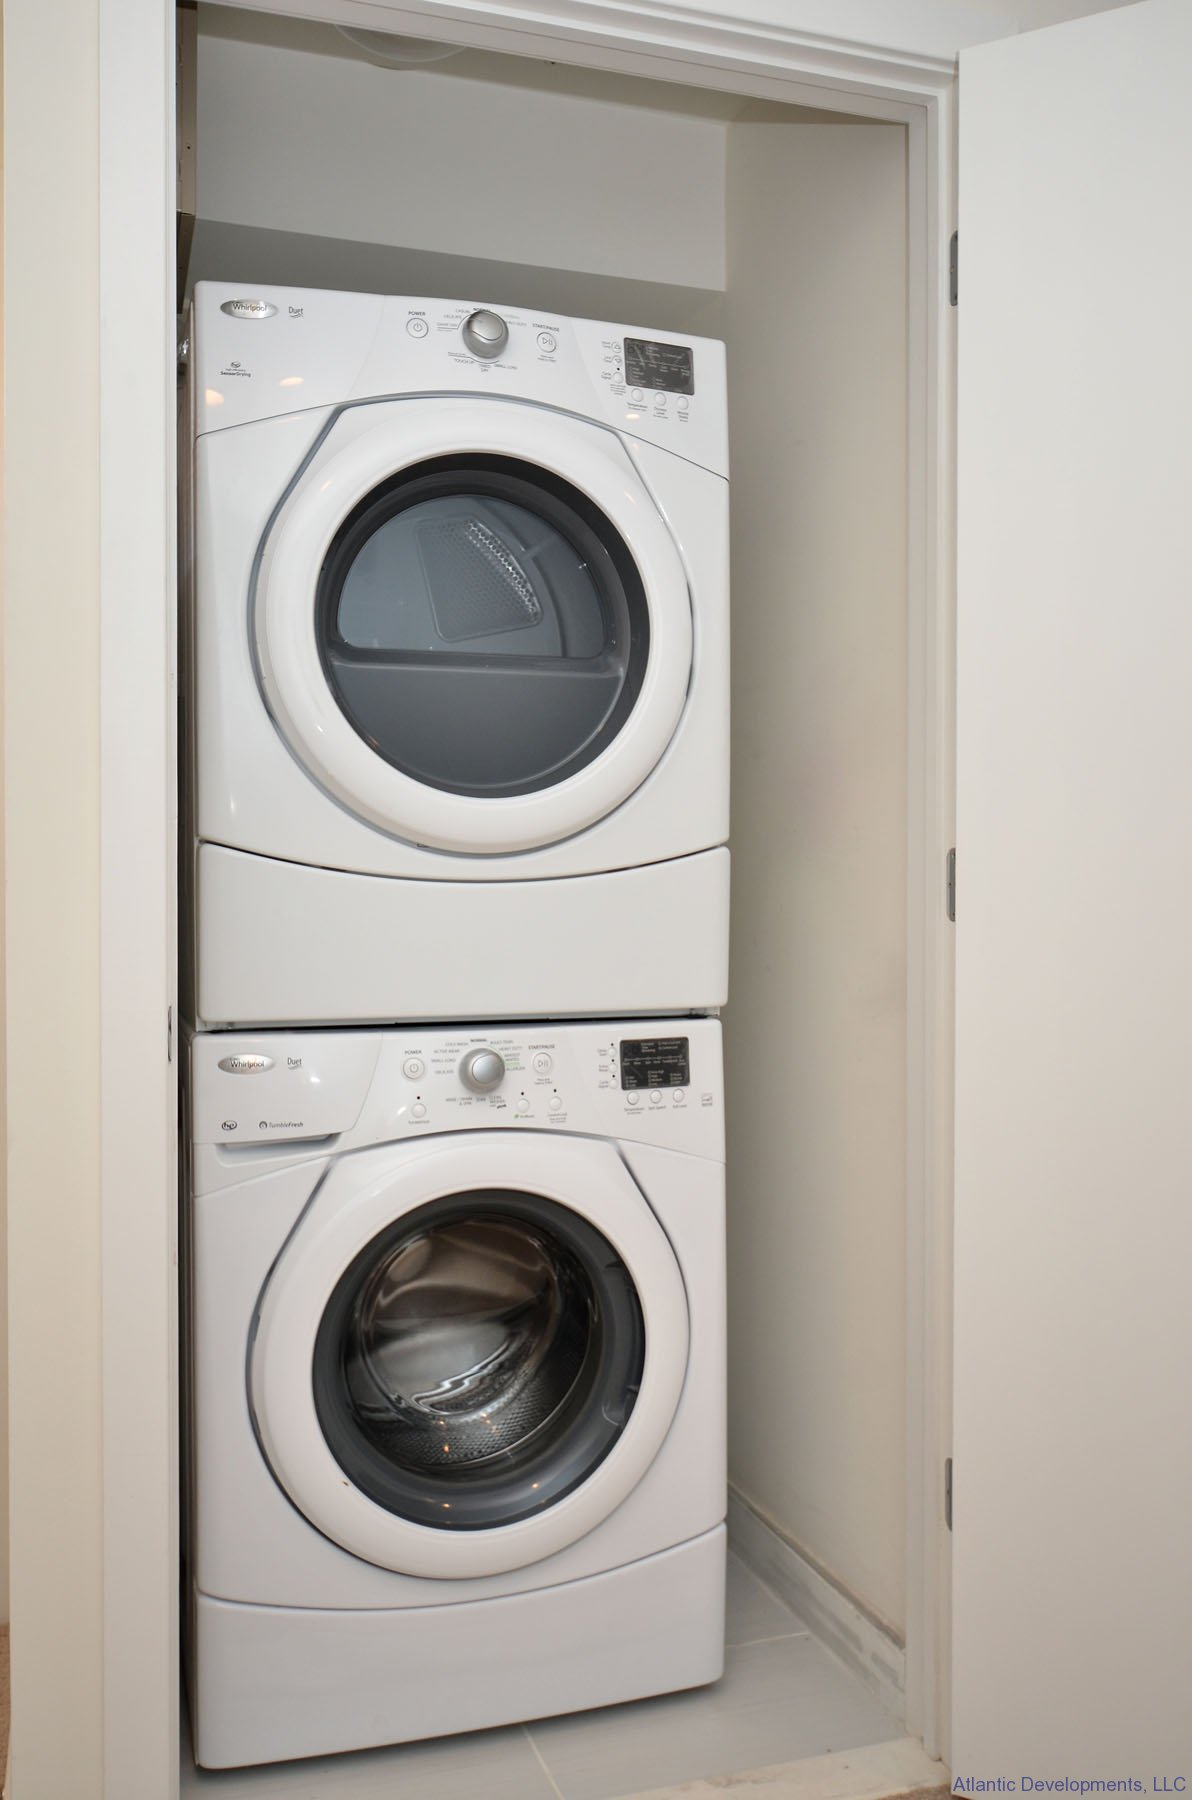 Best Apartment Size Washer Dryer Gallery - Mccwcm.us - mccwcm.us